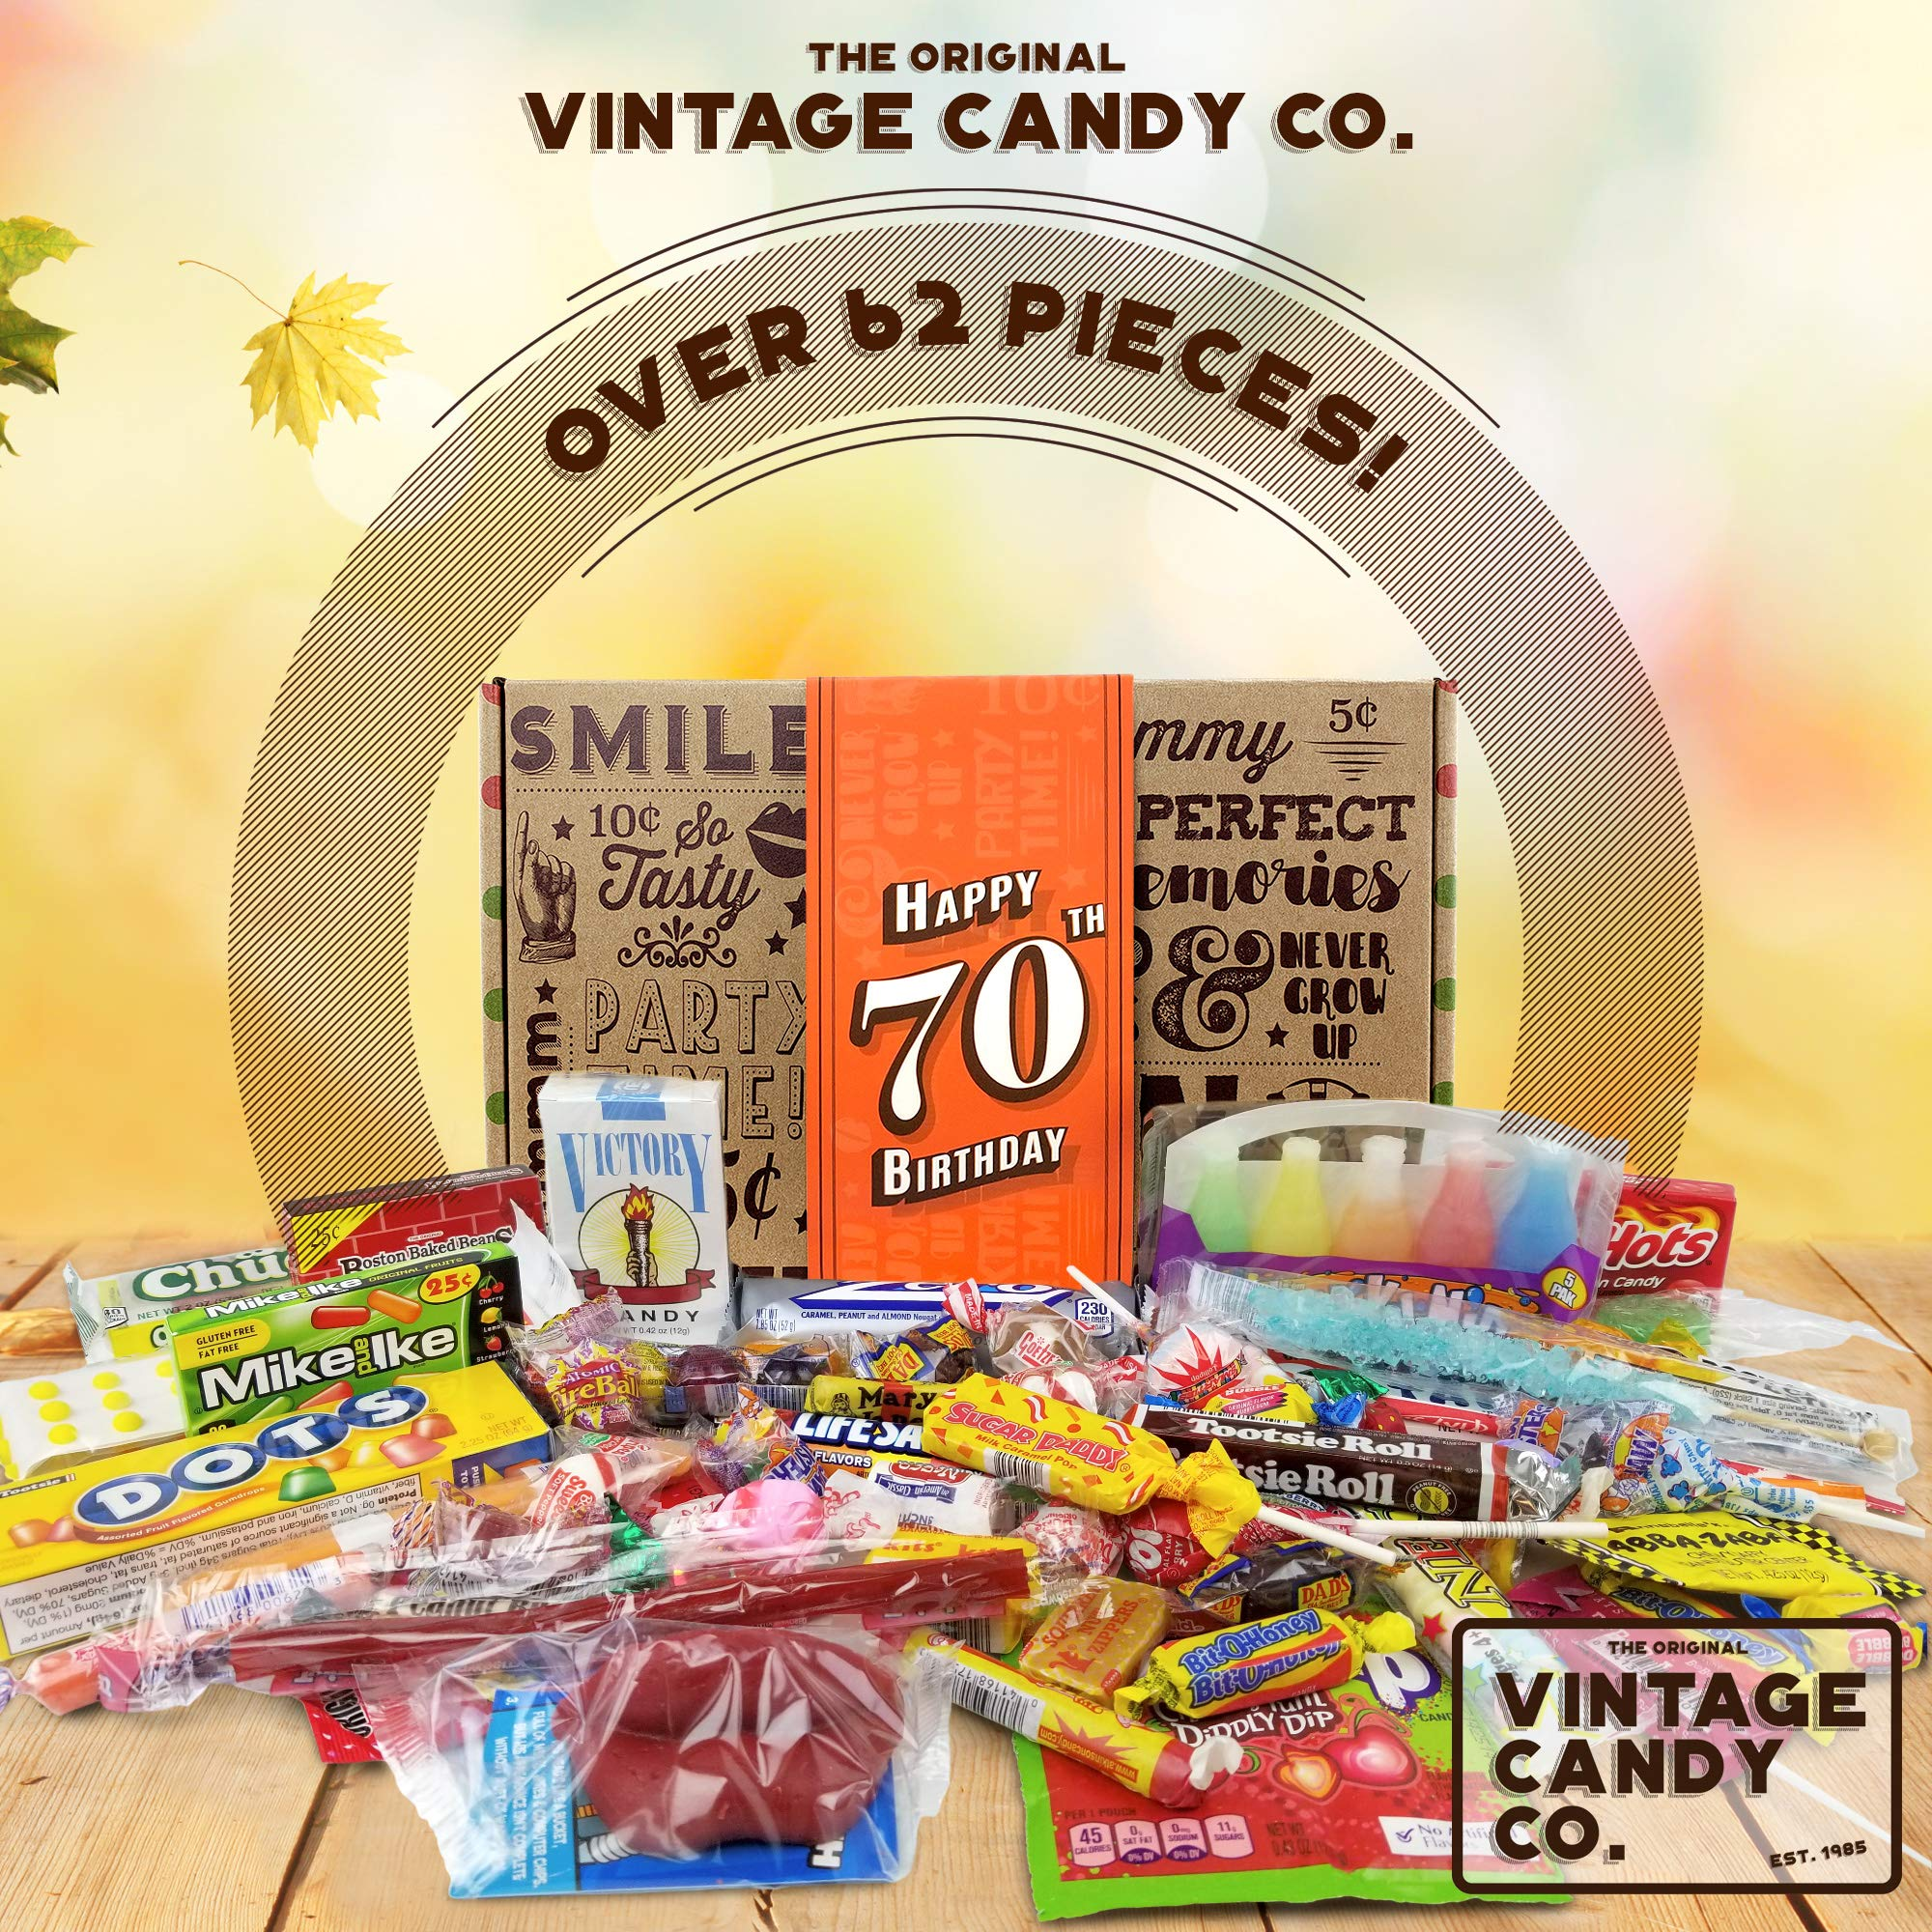 VINTAGE CANDY CO. 70TH BIRTHDAY RETRO CANDY GIFT BOX - 1949 Decade Nostalgic Childhood Candies - Fun Gag Gift Basket for Milestone SEVENTIETH Birthday - PERFECT For Man Or Woman Turning 70 Years Old by Vintage Candy Co. (Image #2)